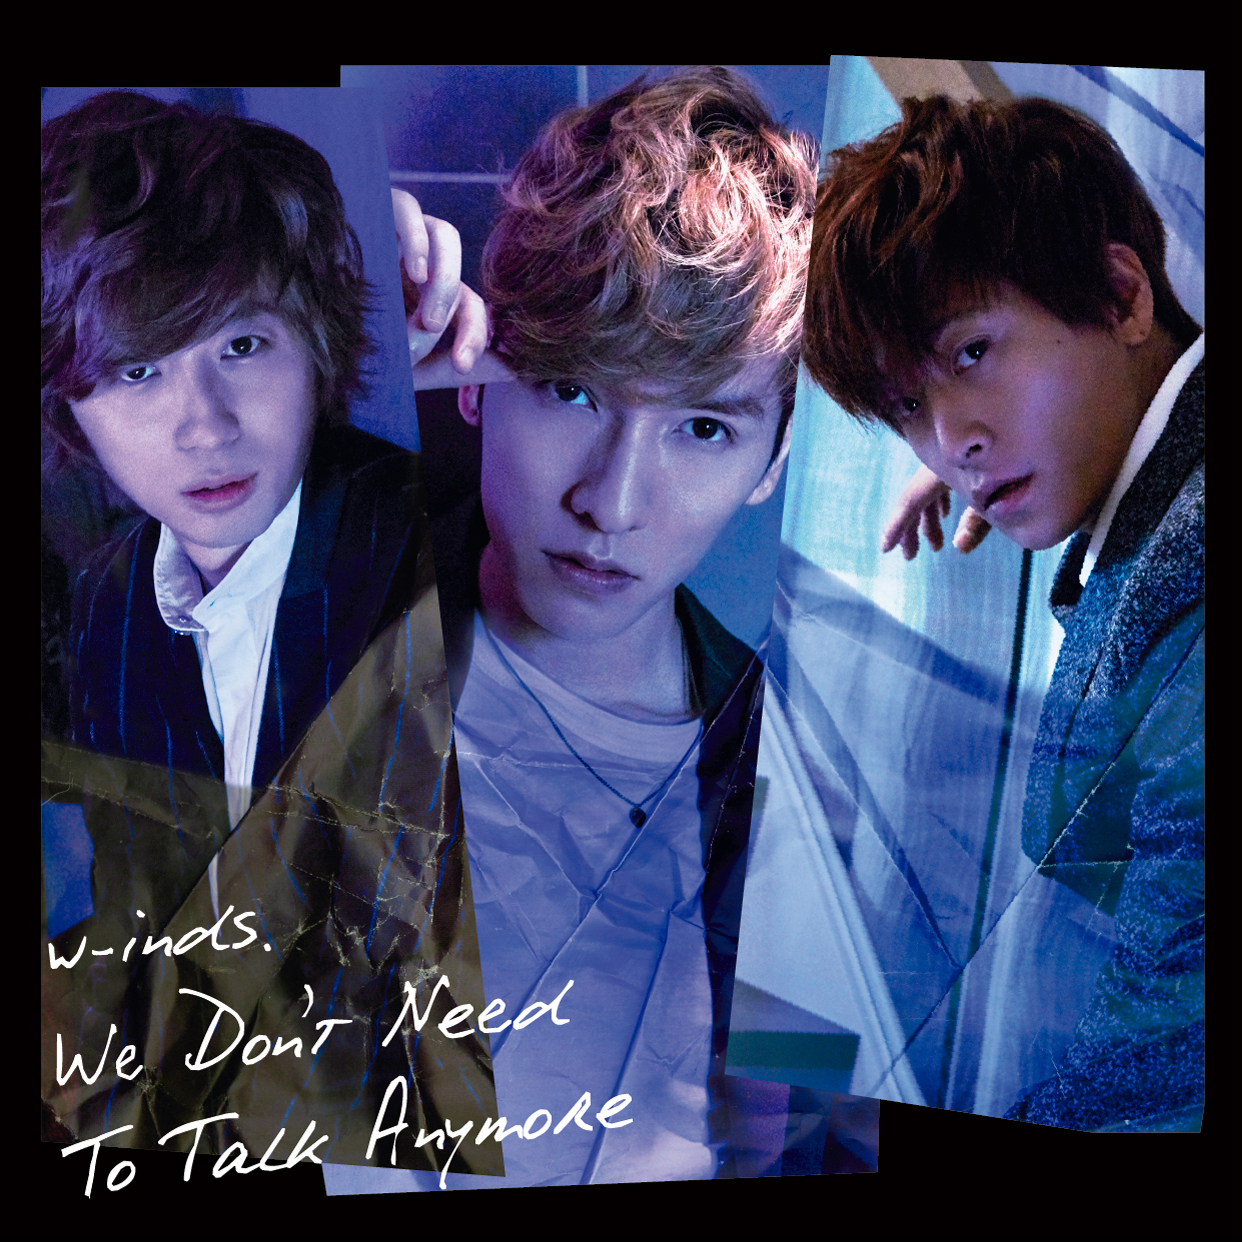 w-inds.「We Don't Need To Talk Anymore」 初回盤B